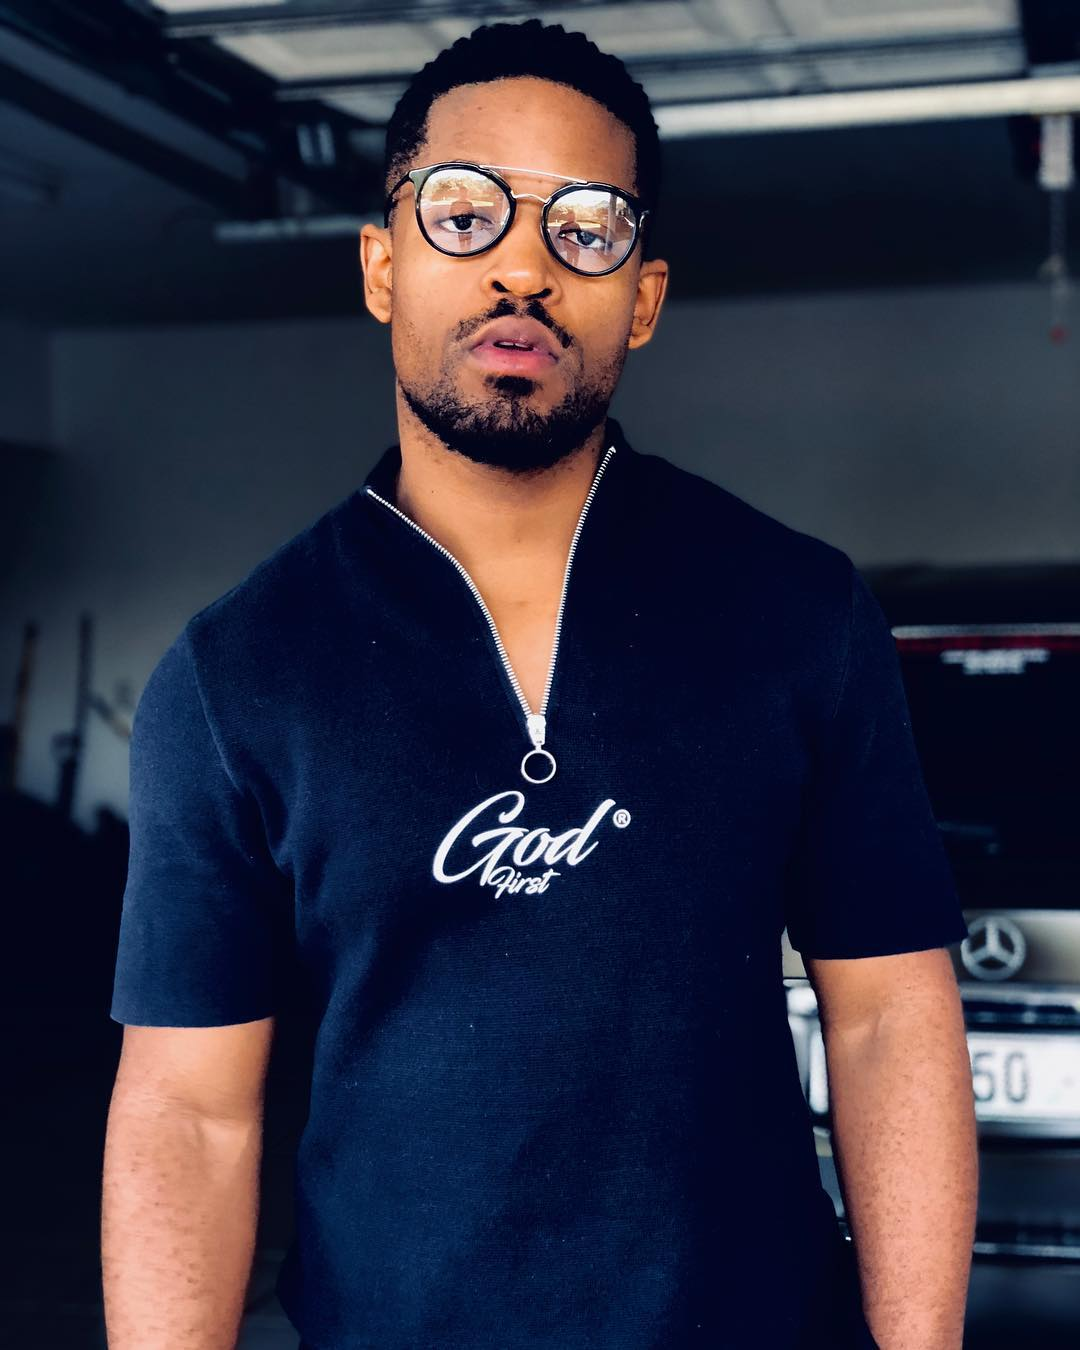 Prince Kaybee Offers To Help An Assaulted Woman